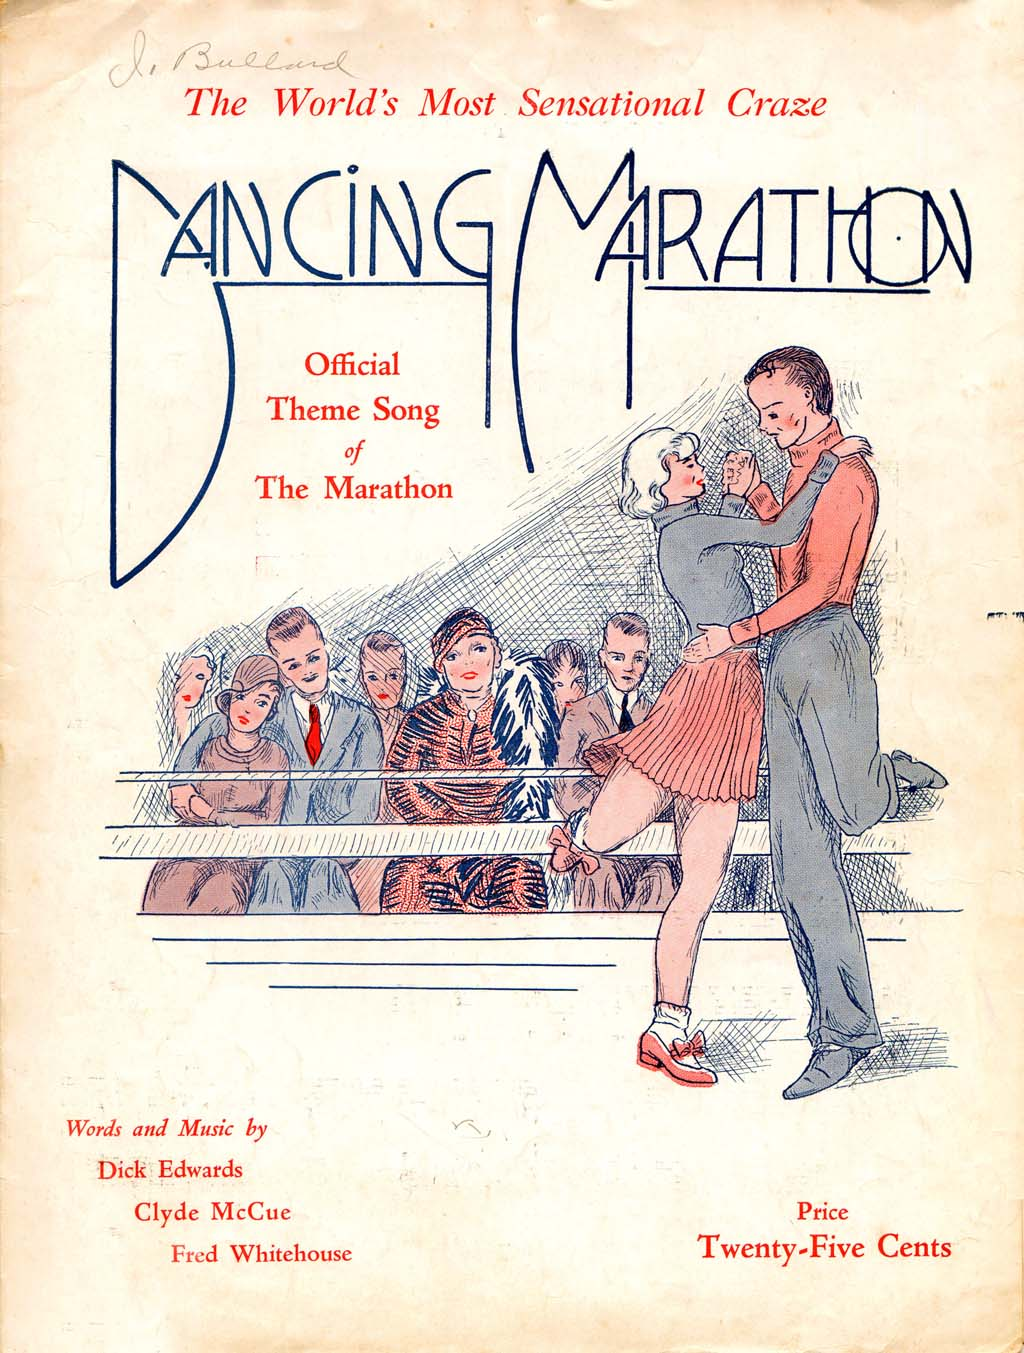 dance marathons of the 1920s and 1930s